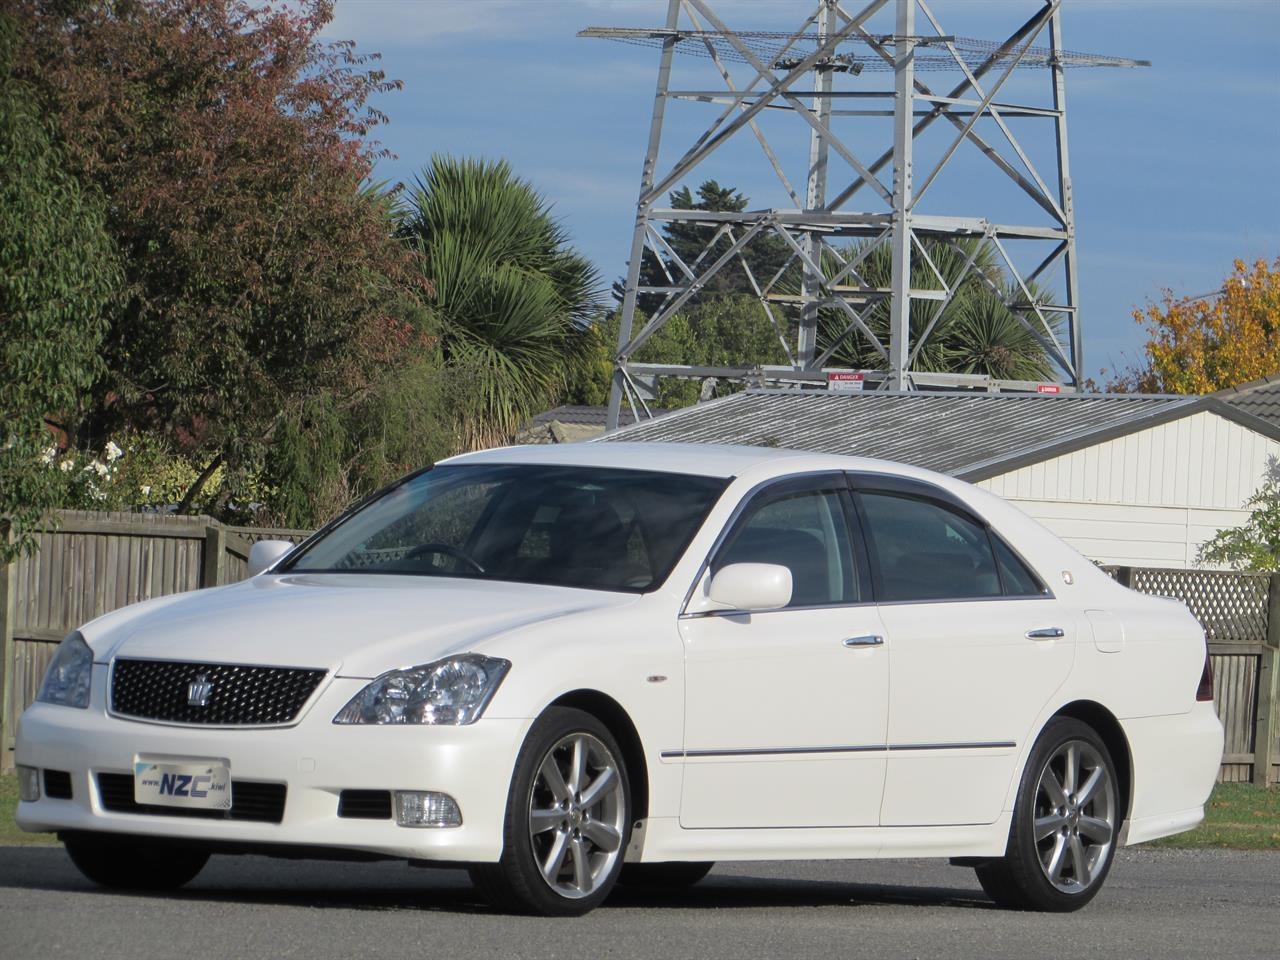 image-1, 2006 Toyota Crown Athlete at Christchurch